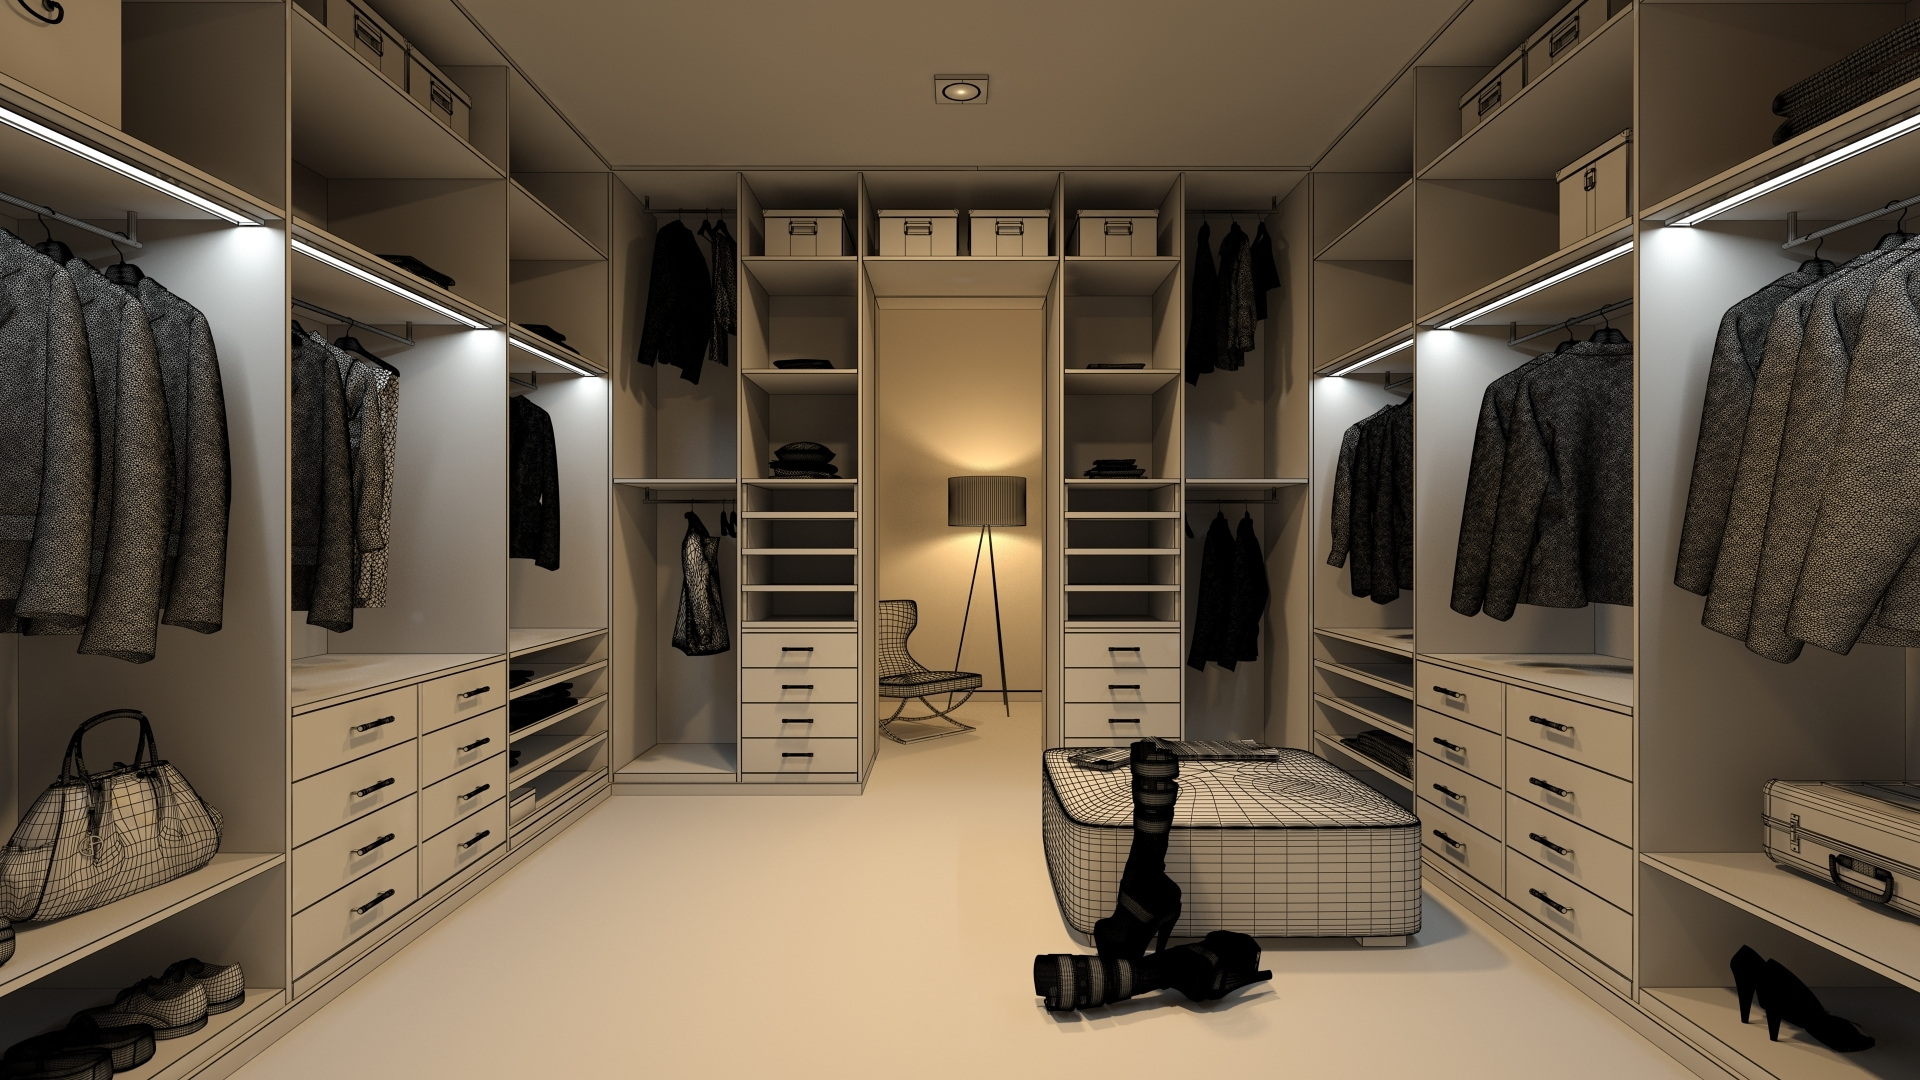 Dressing room 0340 by themerex 3docean for Configurateur dressing 3d